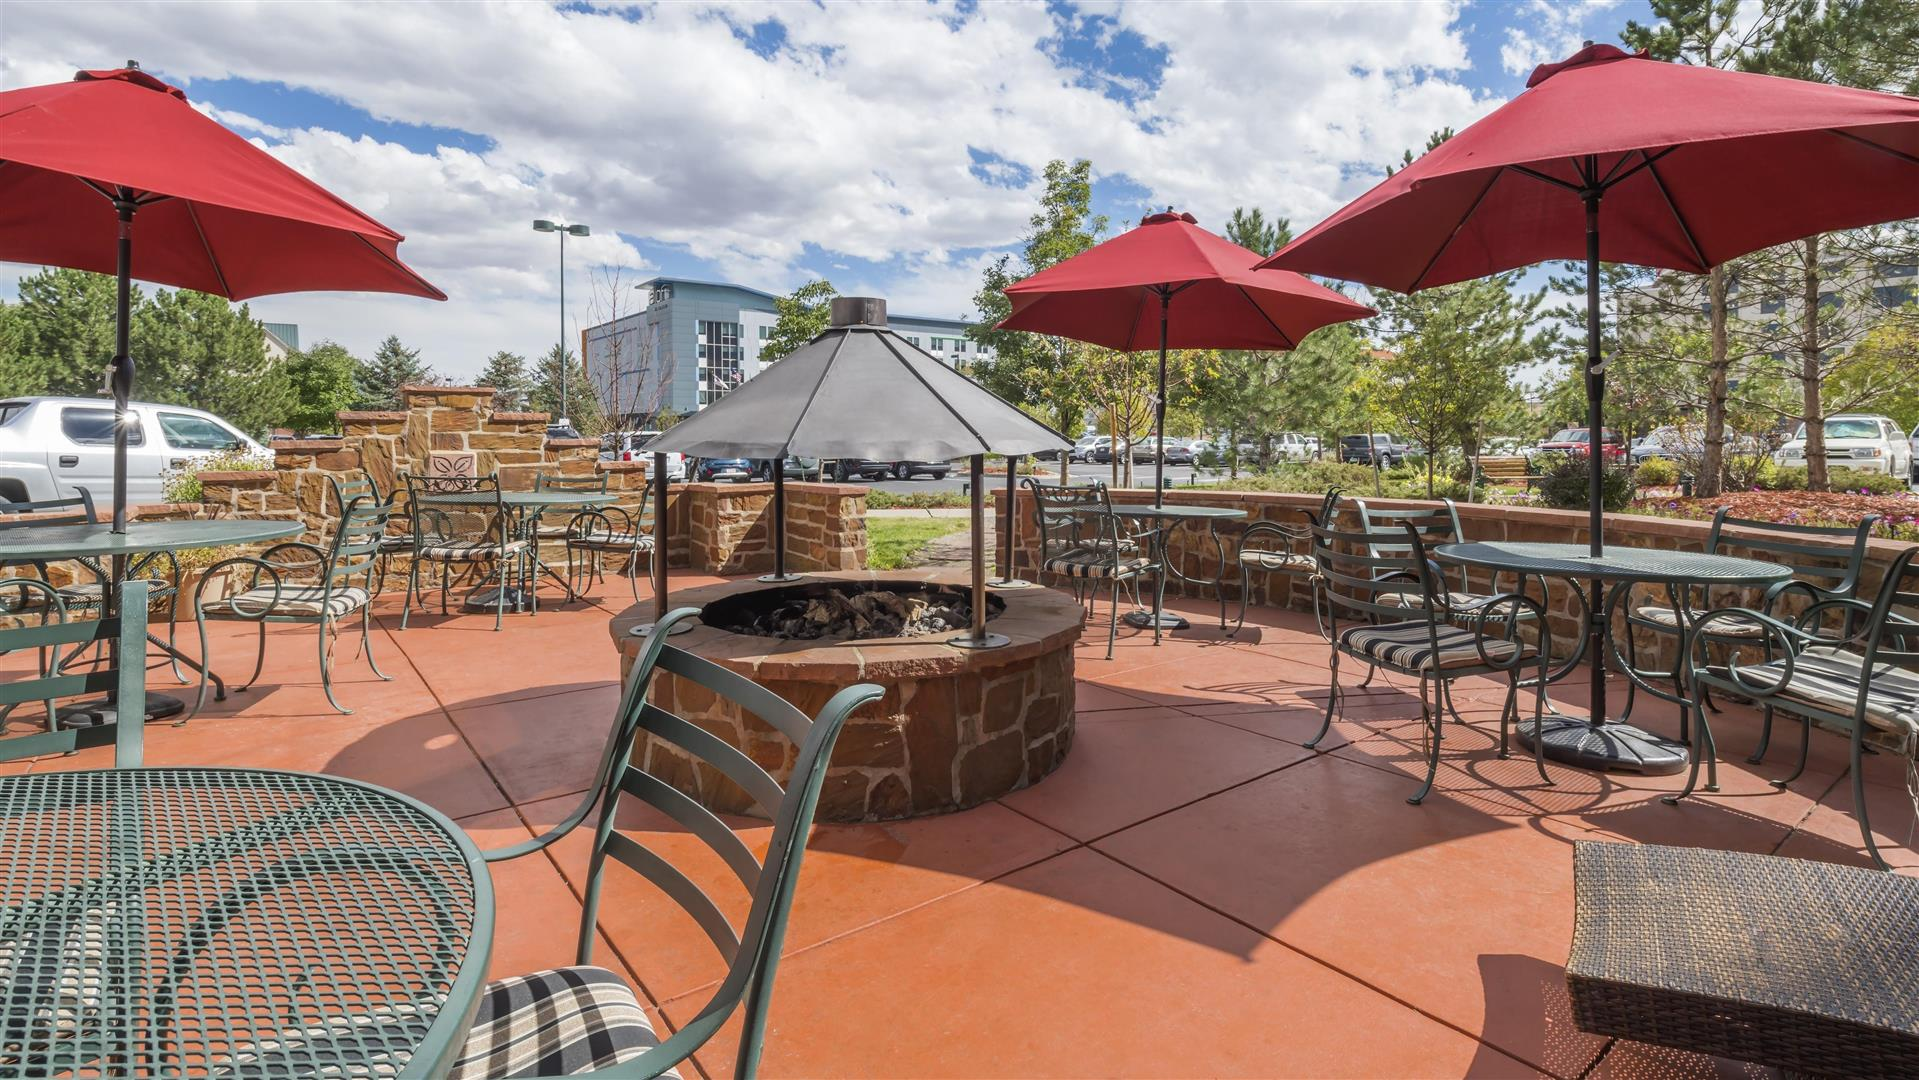 Meetings And Events At Hilton Garden Inn Denver Airport, Aurora, CO, US